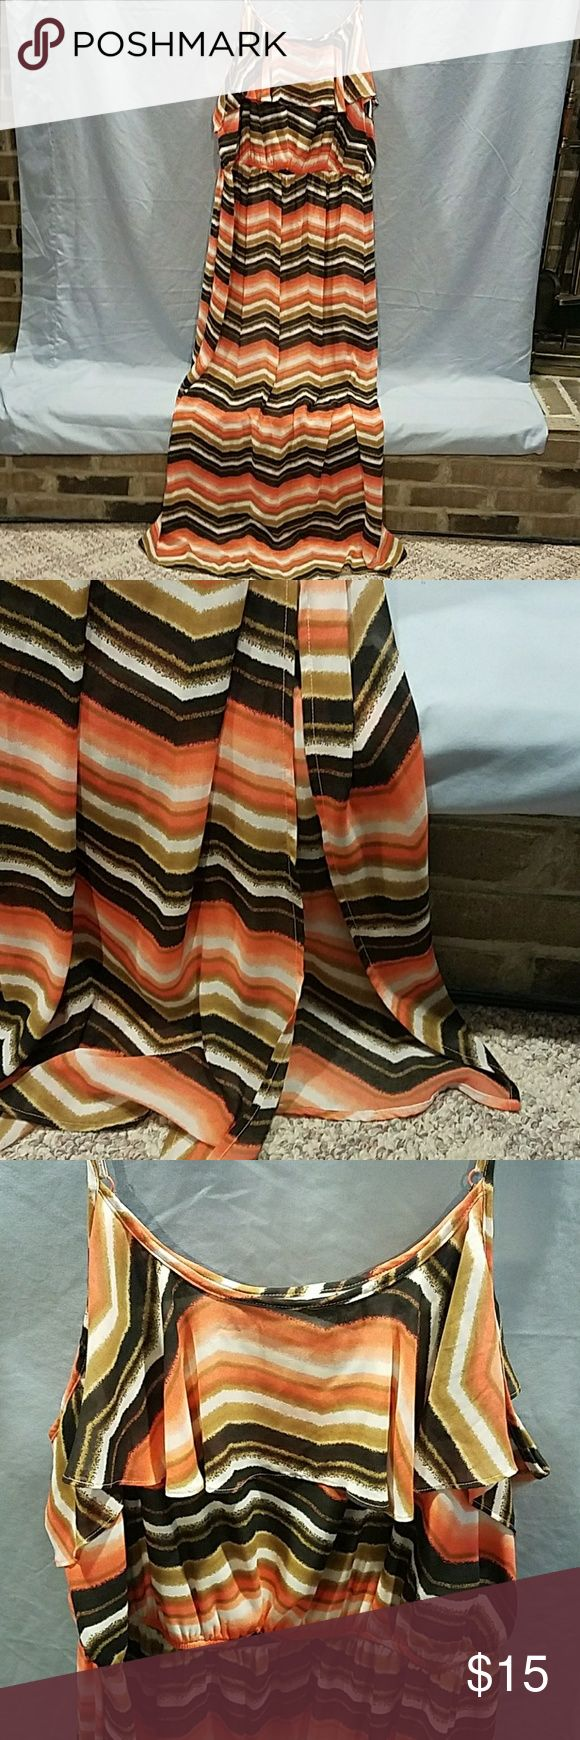 Woman's 3X Chevron Maxi Dress Woman's 3X Chevron Maxi Dress. Slit on the left bottom only goes up 21 inches from the bottom. Black, orange tones, browns, and white. Spaghetti straps, ruffle goes around the top and it has an elastic waist. It's made from 100% polyester and it measures 57 inches from top to bottom. HeartSoulPlus Dresses Maxi